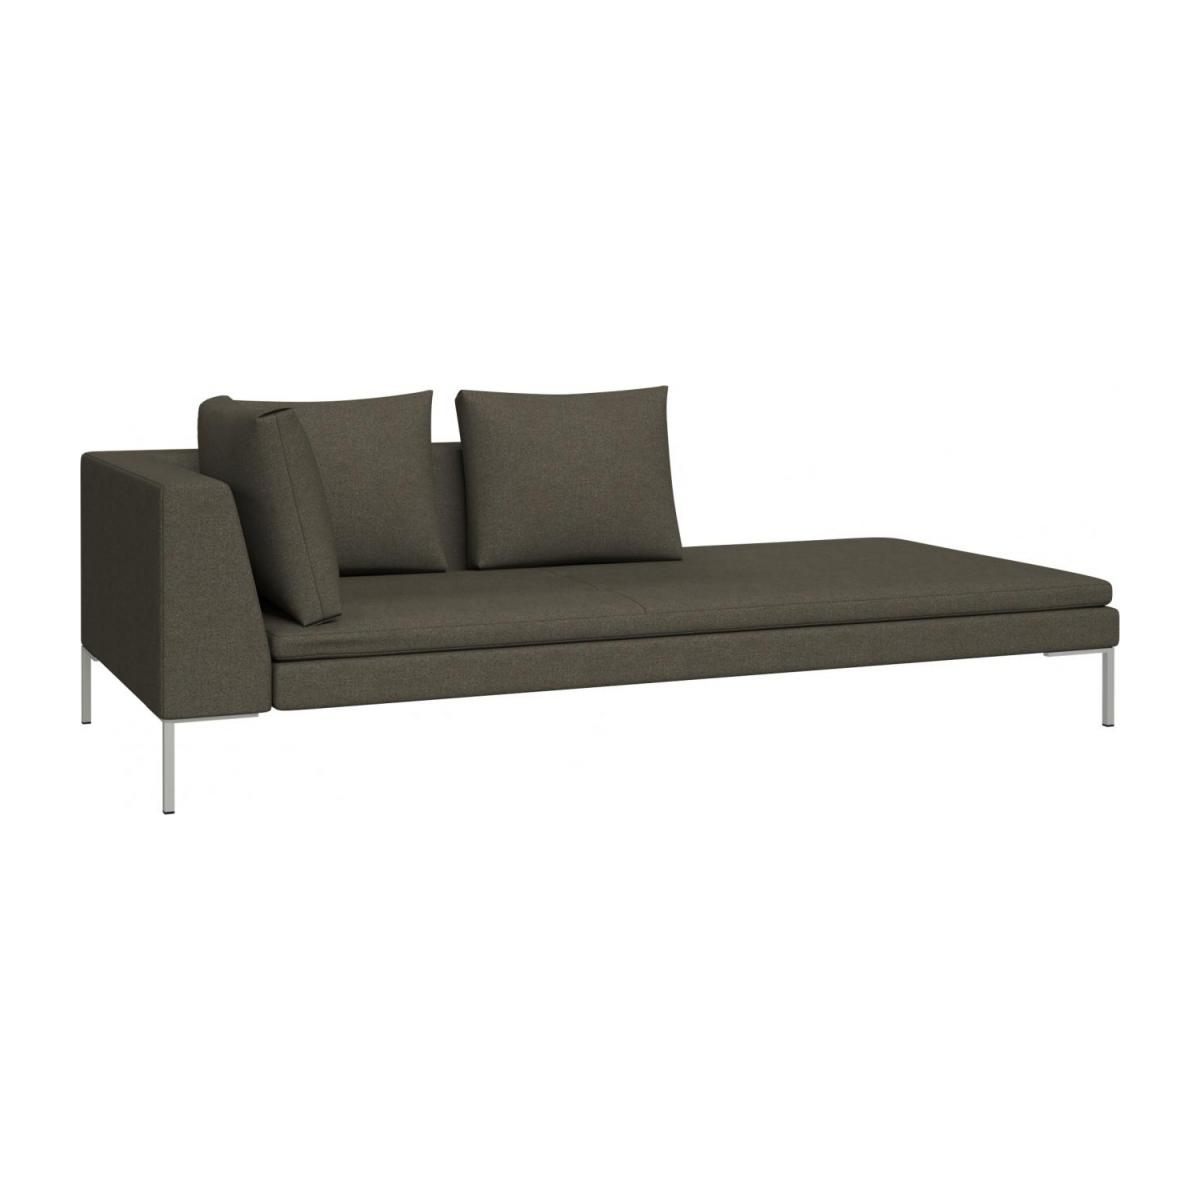 Right chaise longue in Lecce fabric, slade grey n°1